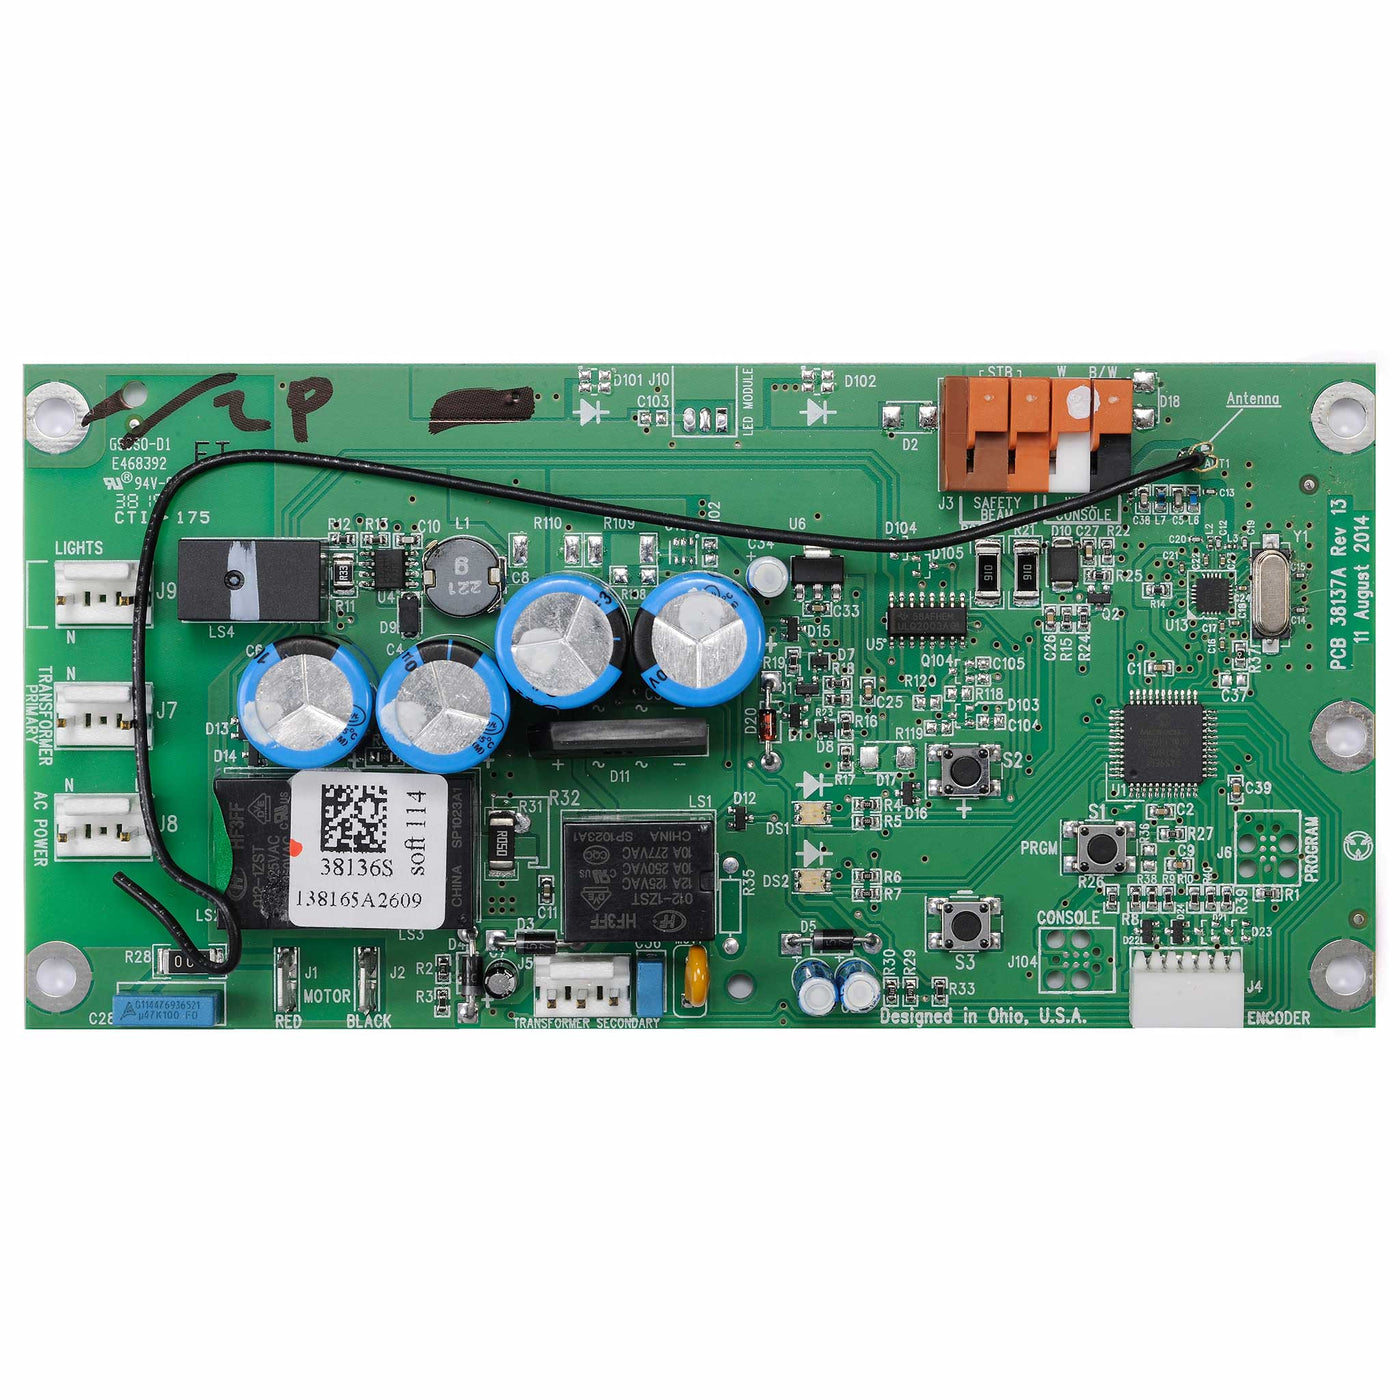 Genie Circuit Board Assembly 39340rs The Company Electronic Service Parts